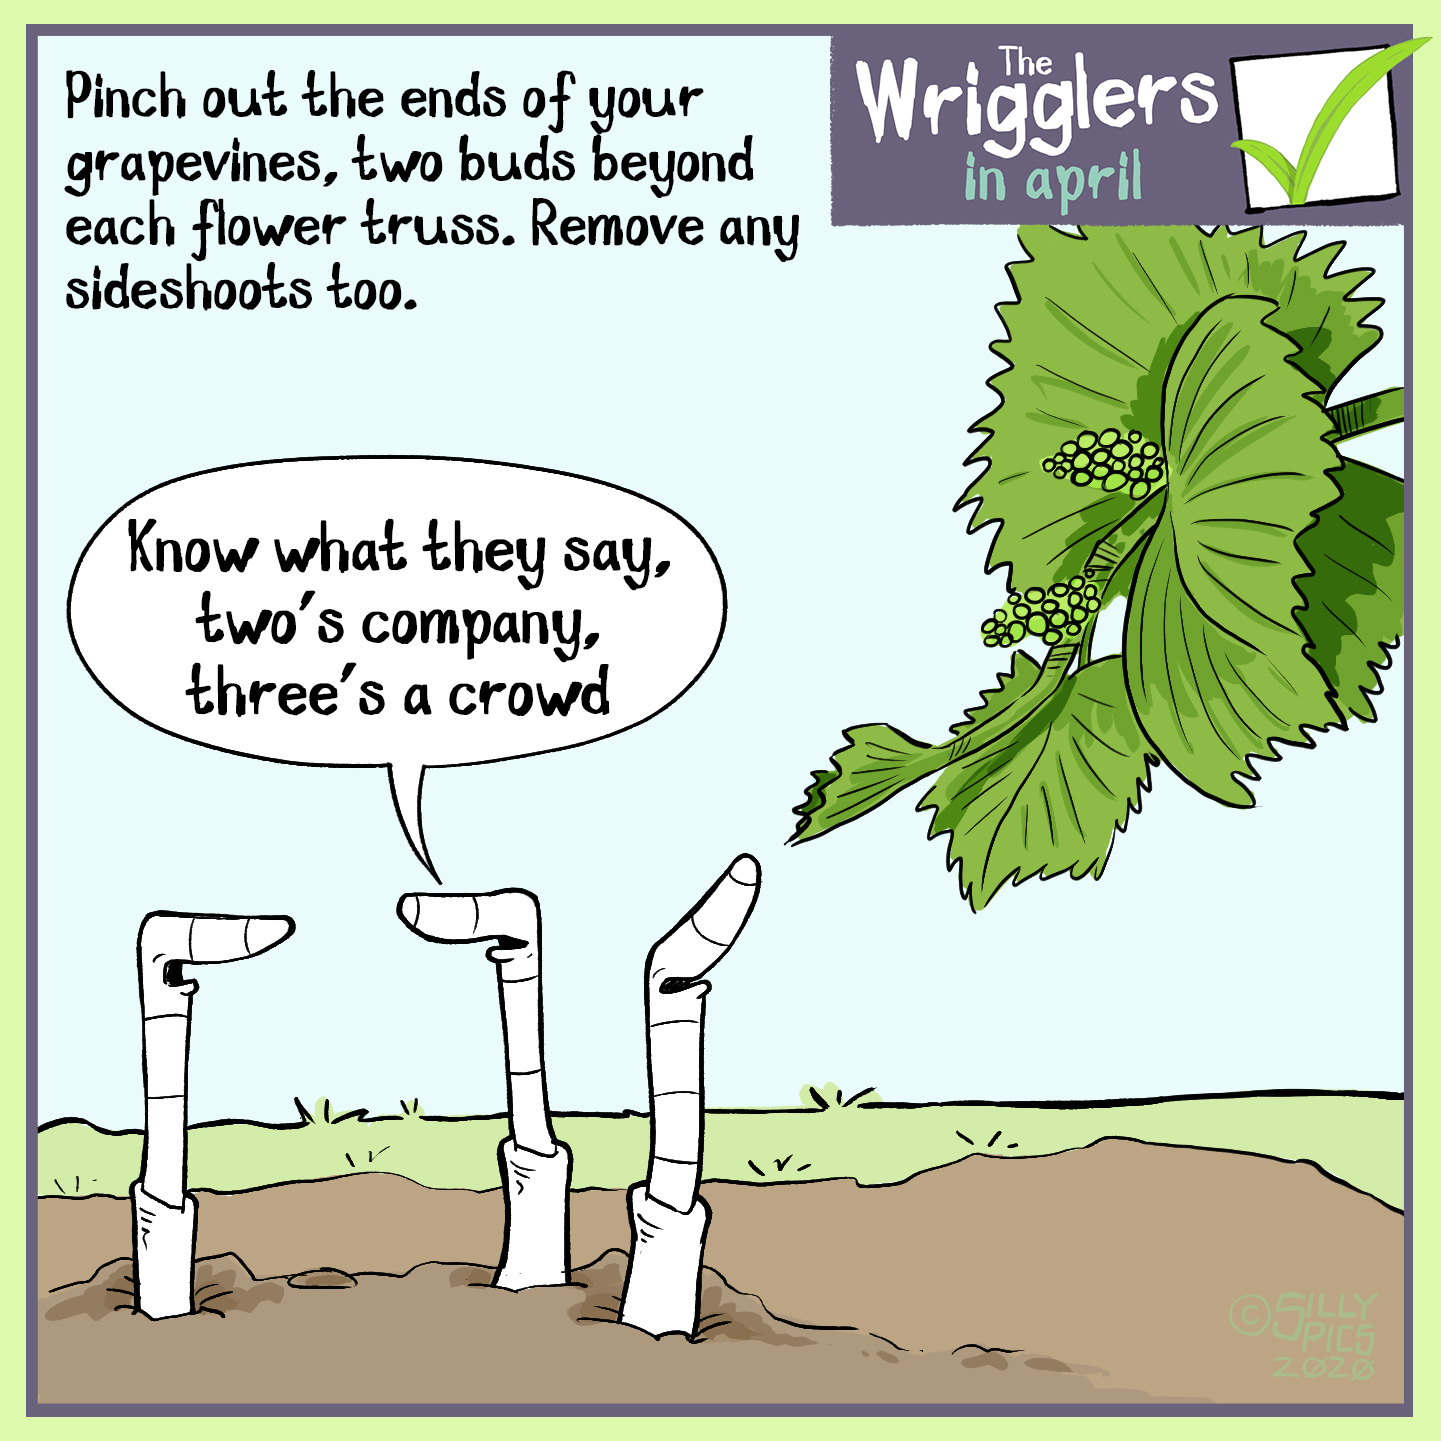 """April's the time to pinch out your grapevines to two buds beyond each flower truss. This cartoon show three worms looking at a grapevine with a flower truss. One worm turns the worm at the back and says, """"you know what they say, two's company, three's a crowd."""""""